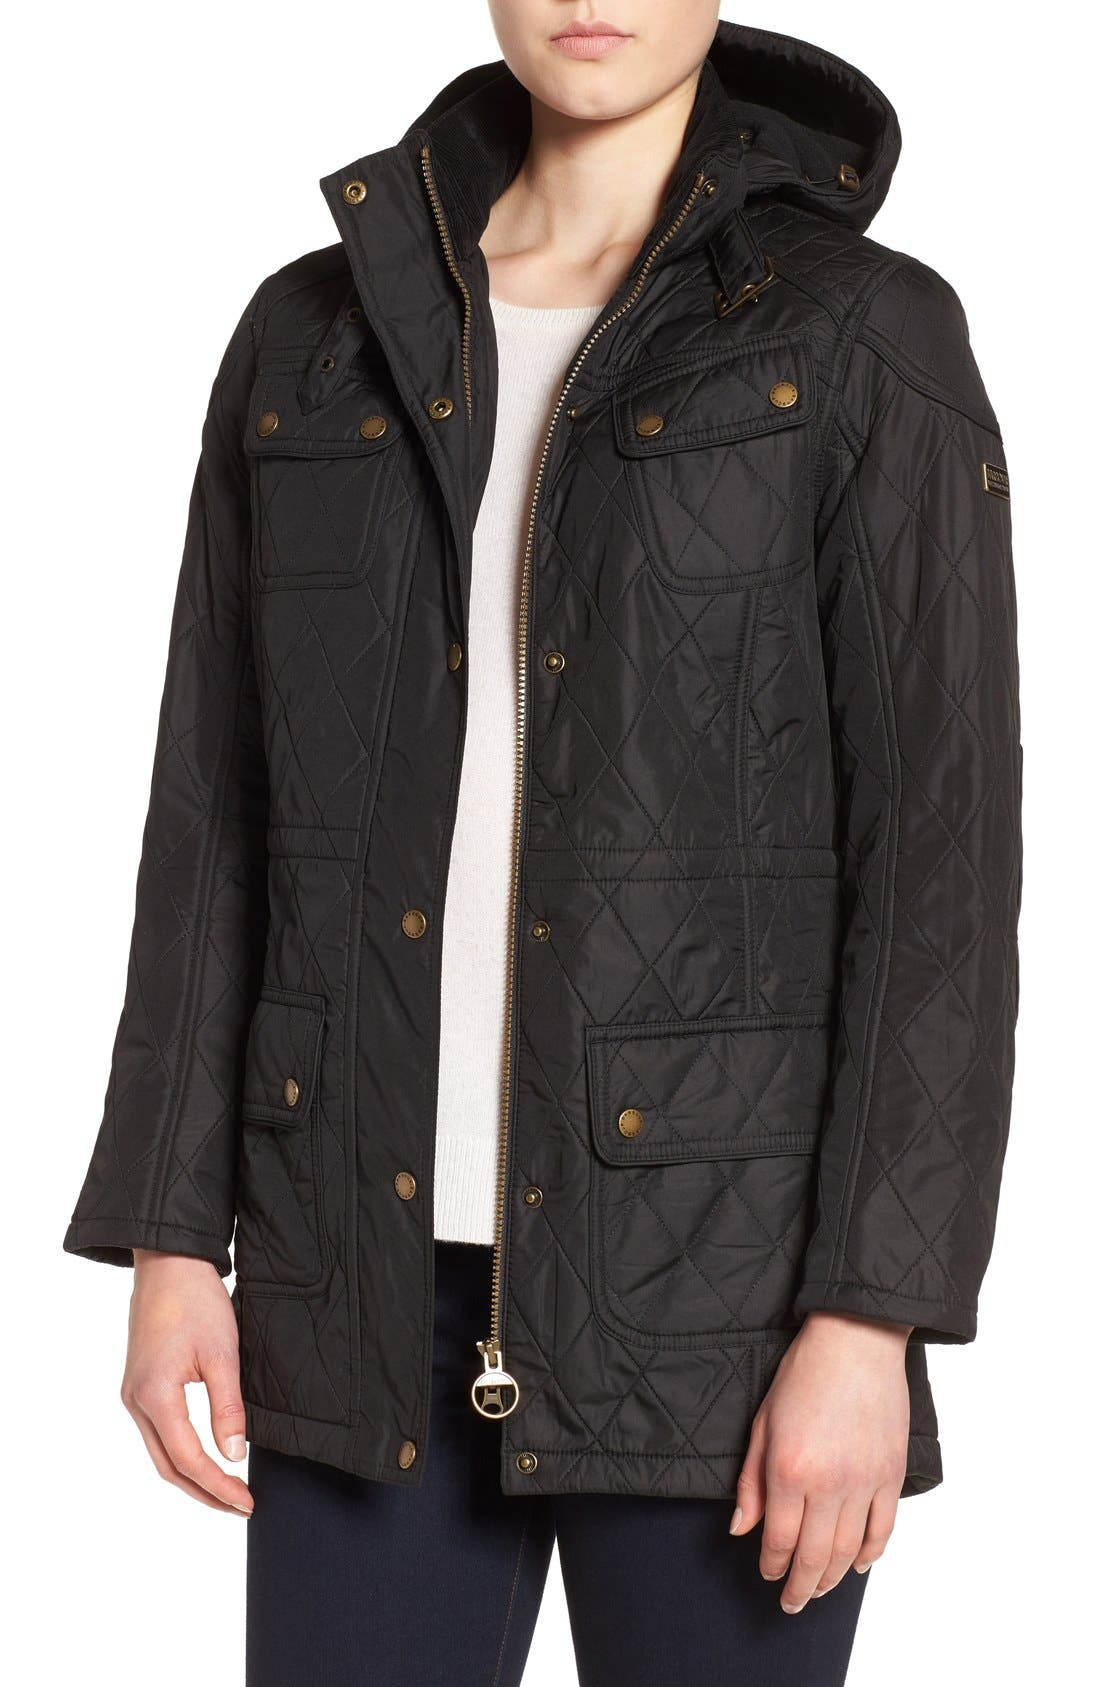 Alternate Image 1 Selected - Barbour 'Arrow' Quilted Anorak